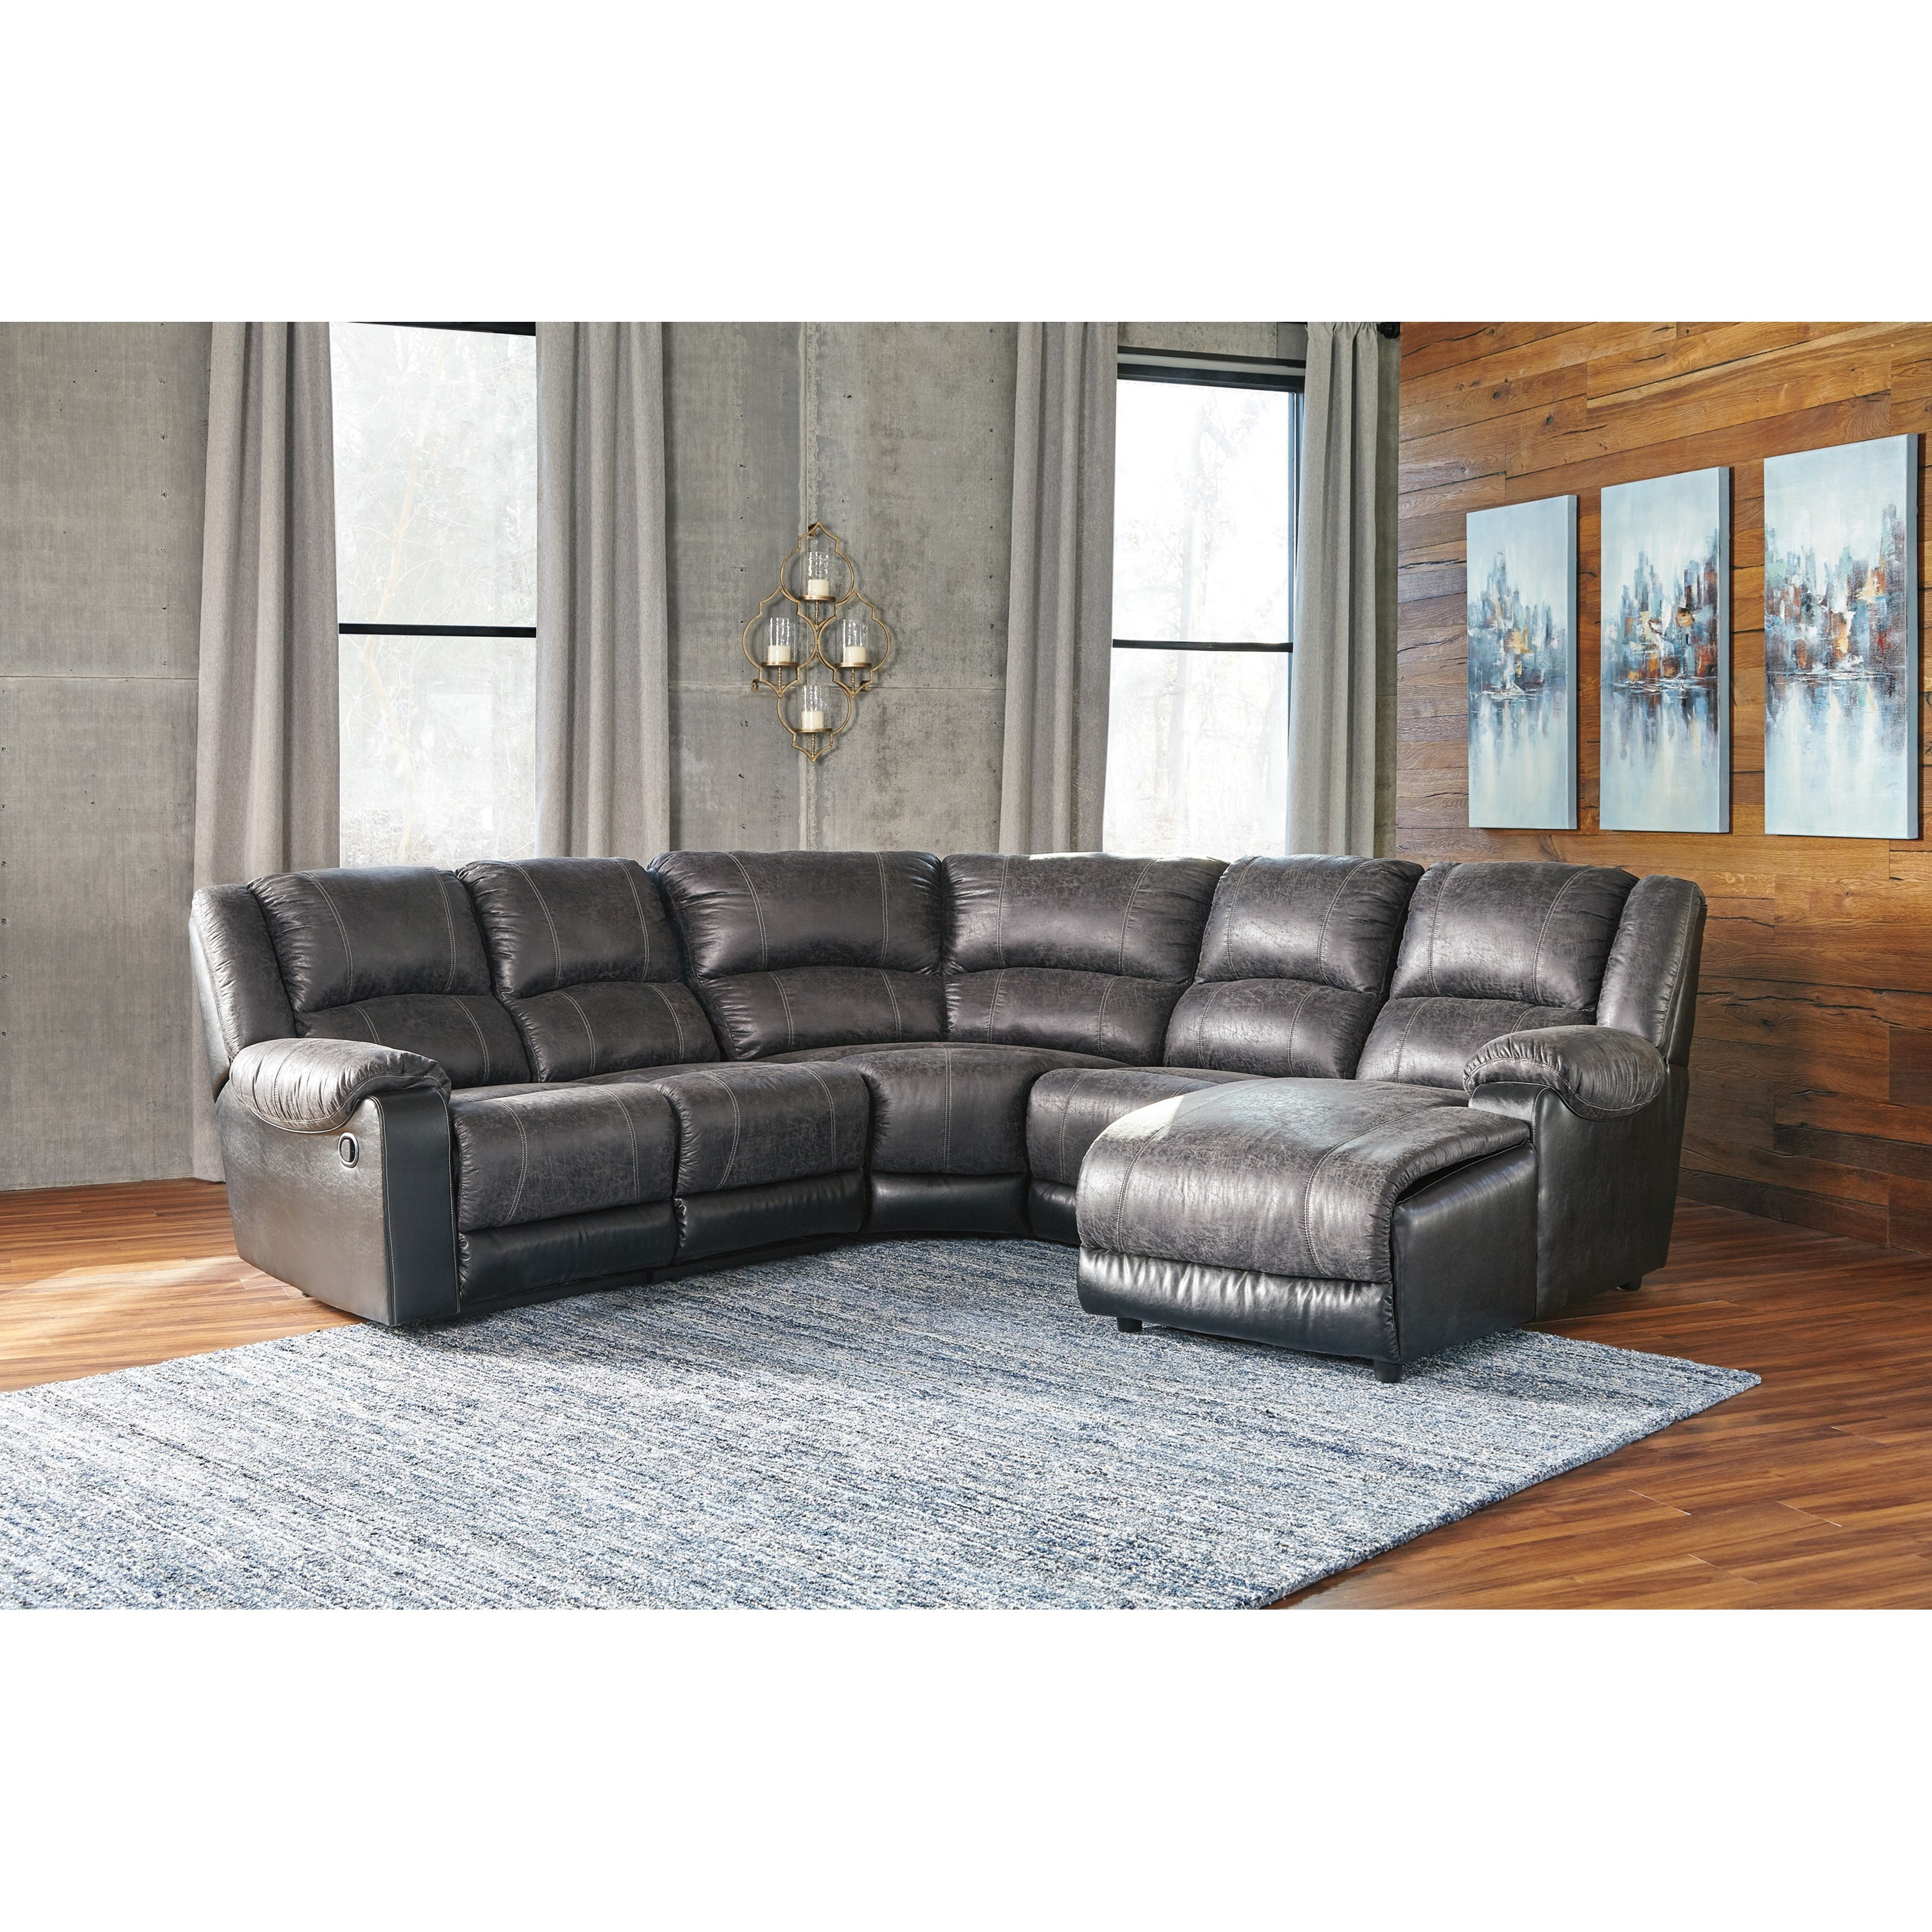 Signature design by ashley nantahala faux leather reclining sectional with chaise del sol - Leather reclining sectional with chaise ...